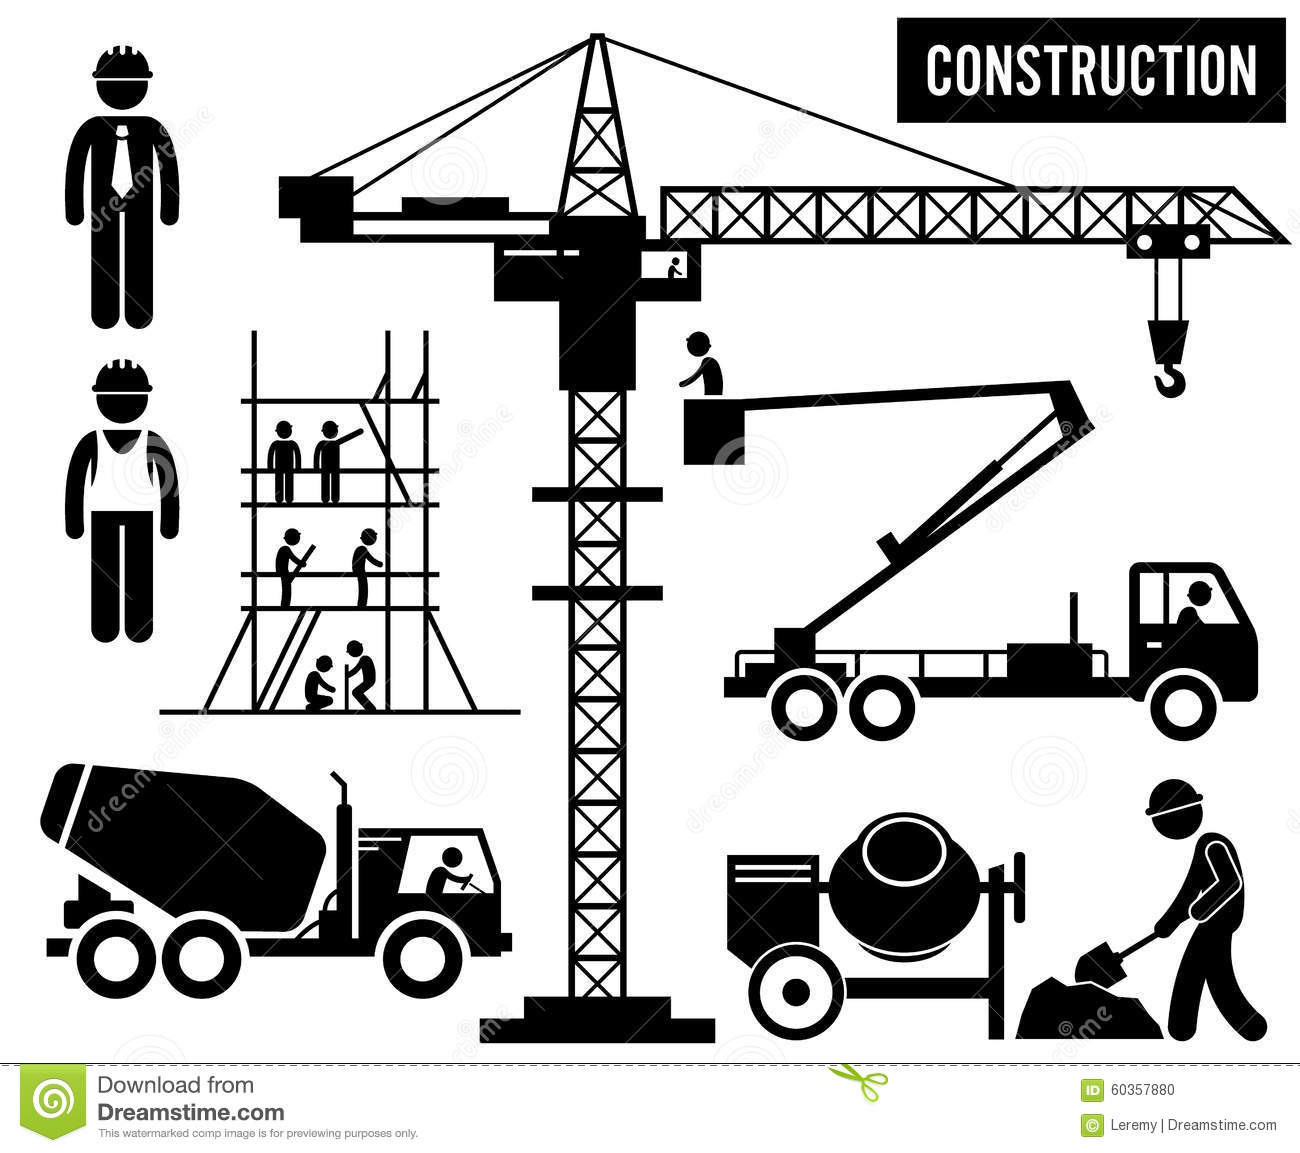 Company Signs At Construction Sites